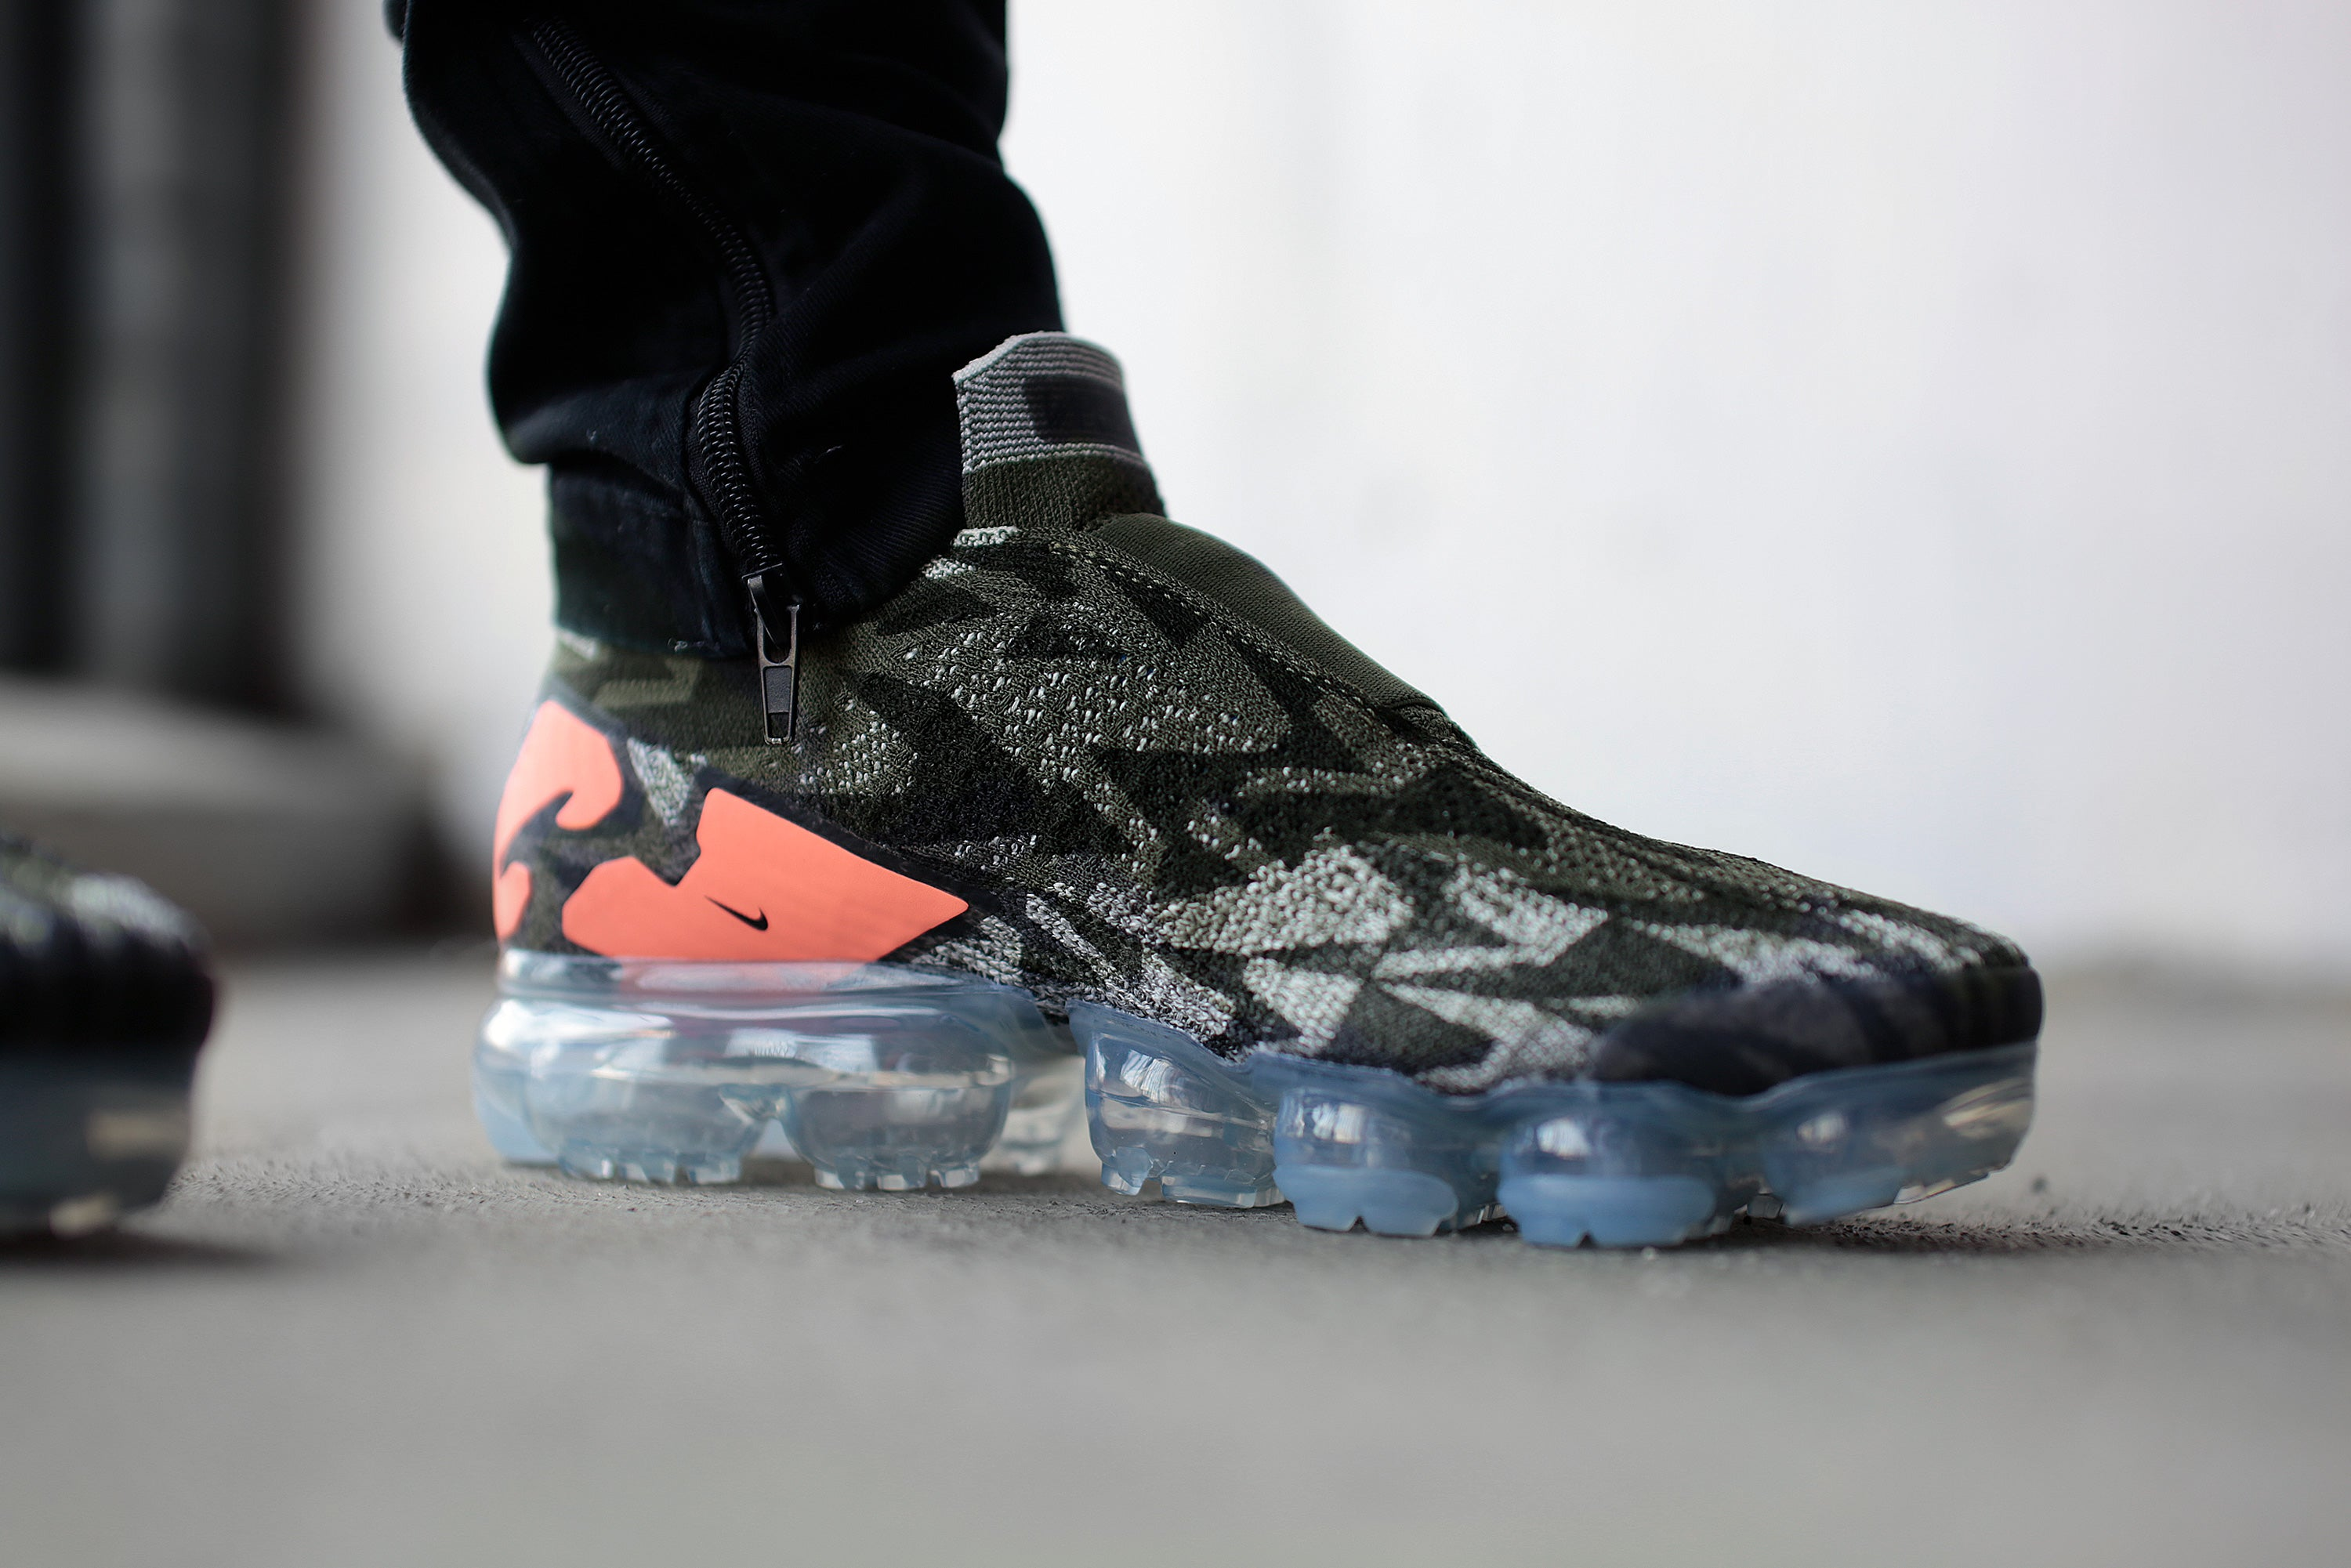 hot sale online f9140 88018 Nike x Acronym Vapormax Moc 2 - Releasing 515